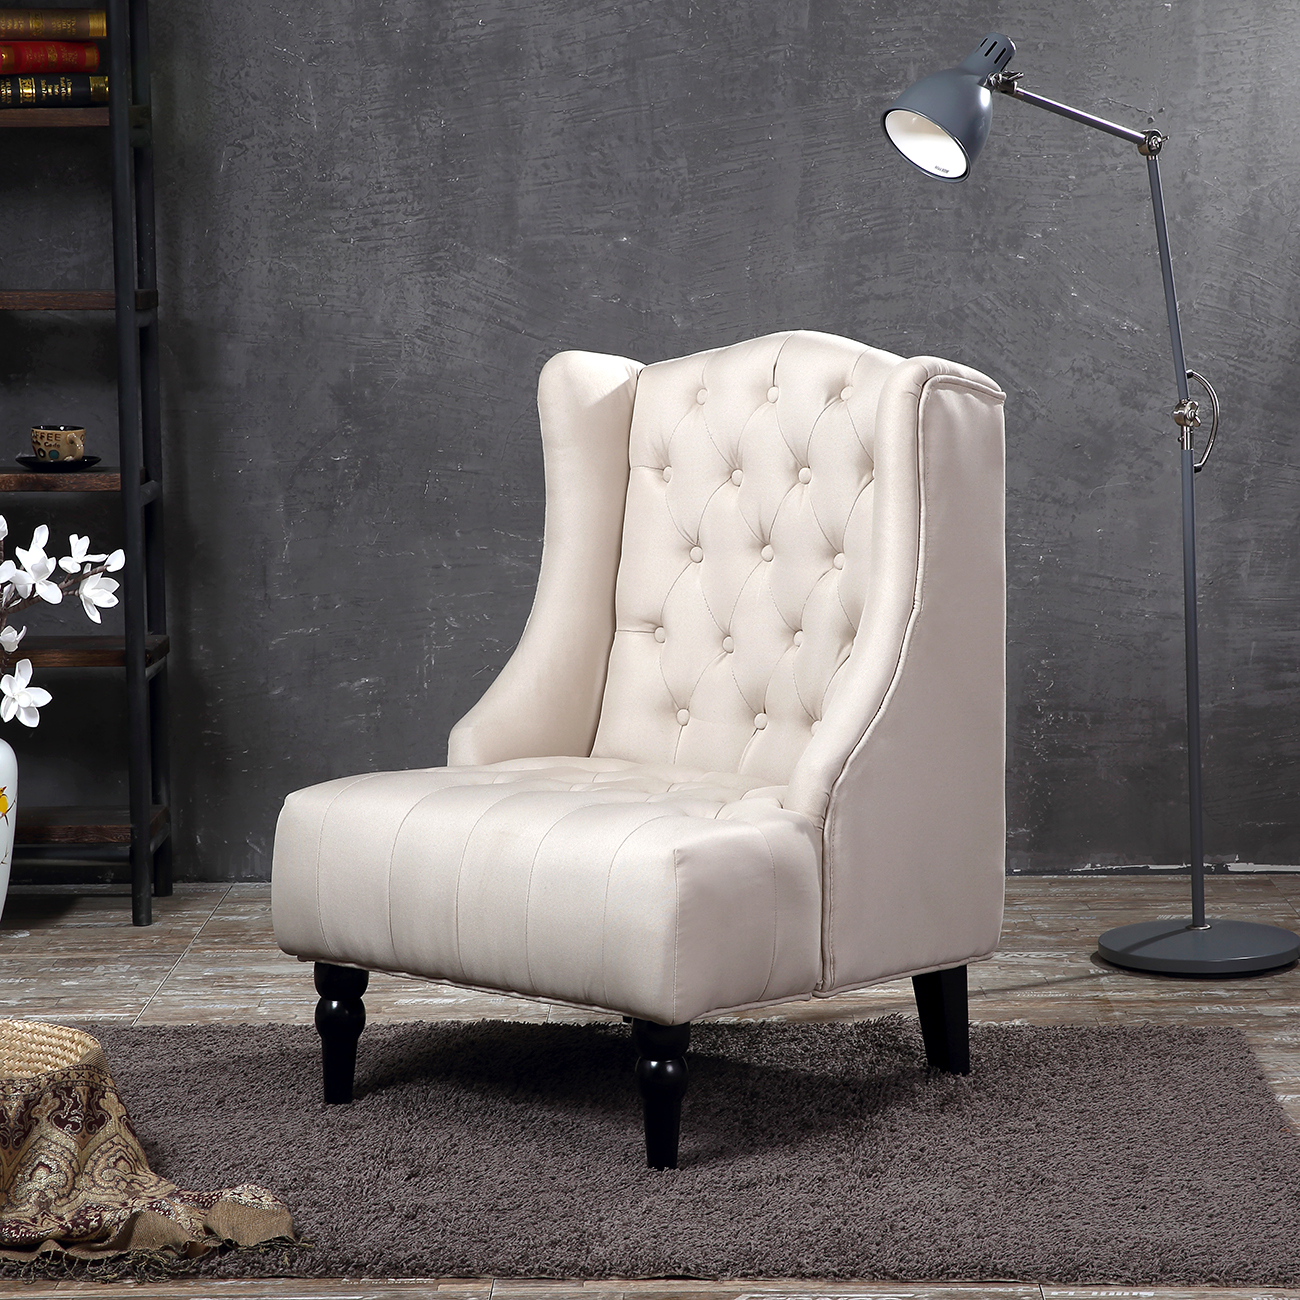 Belleze Tall Wingback Tufted Linen Accent Chair Tufted High Back with Nail Head, Beige